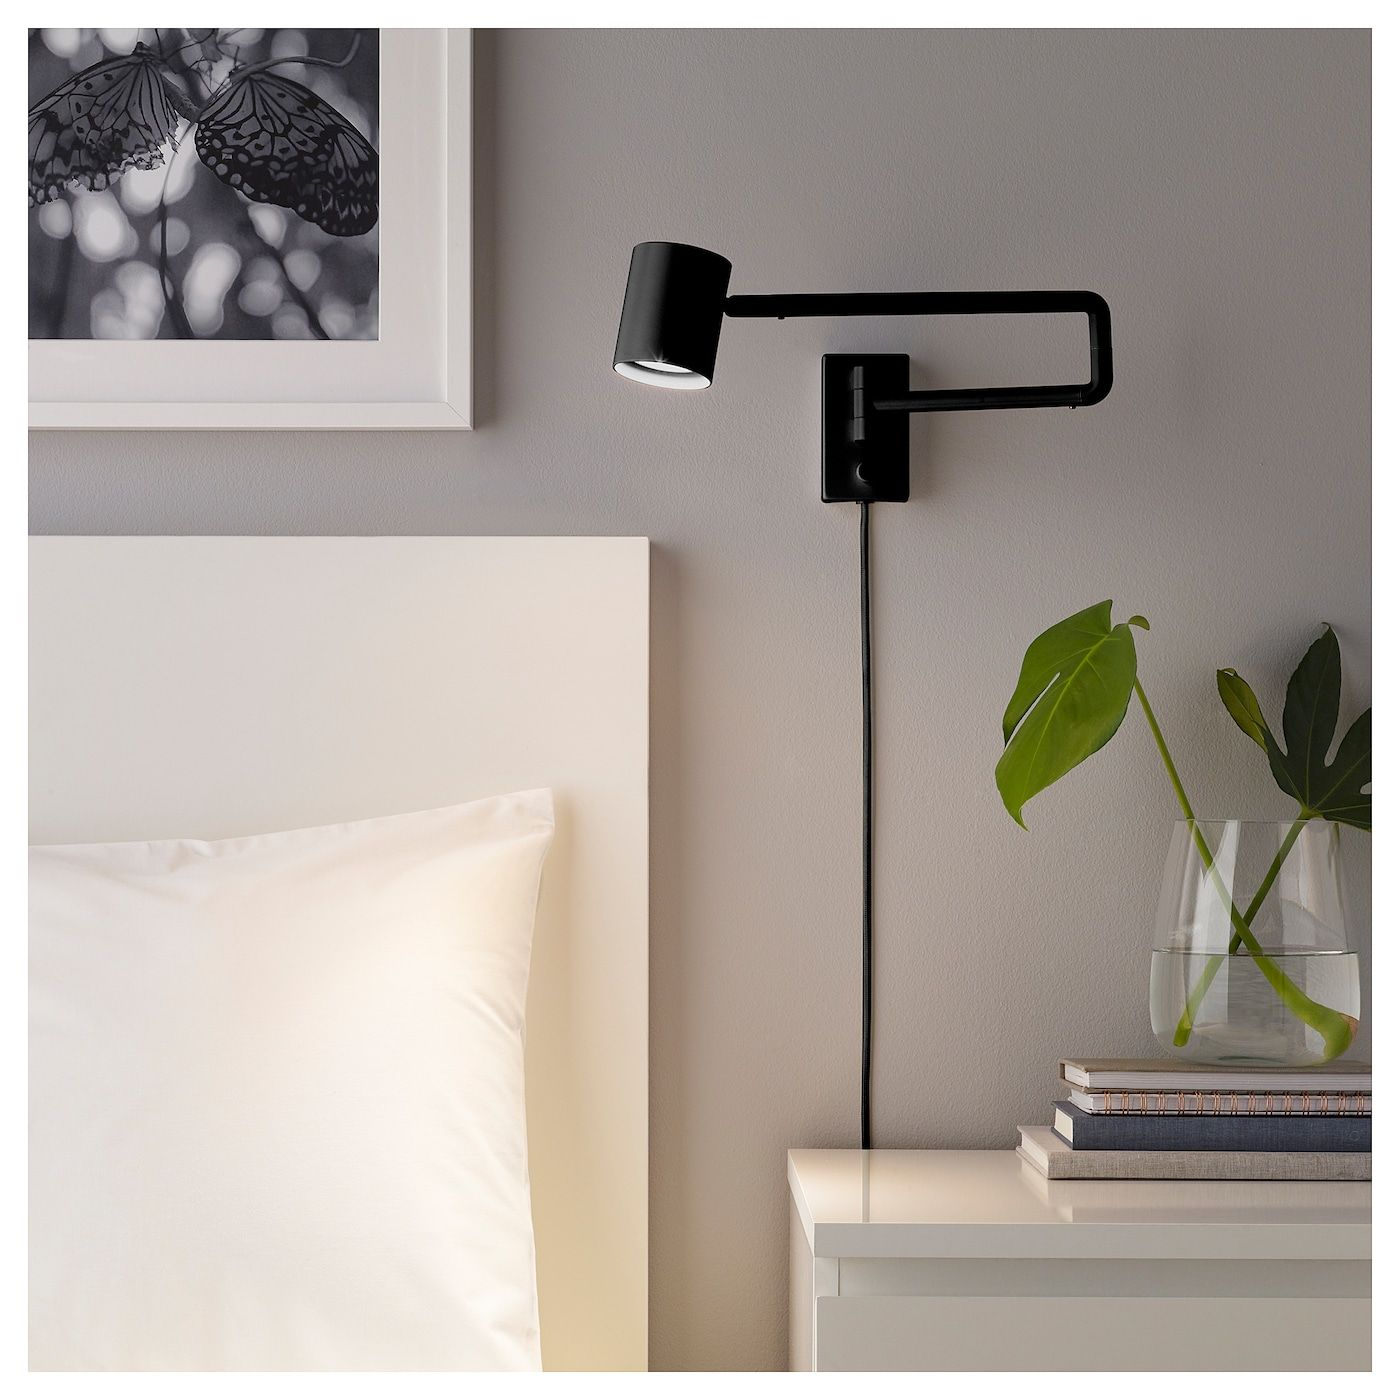 Nymane Wall Lamp With Swing Arm Led Bulb Anthracite Ikea Bedside Wall Lamp Wall Lamps Bedroom Wall Lamp